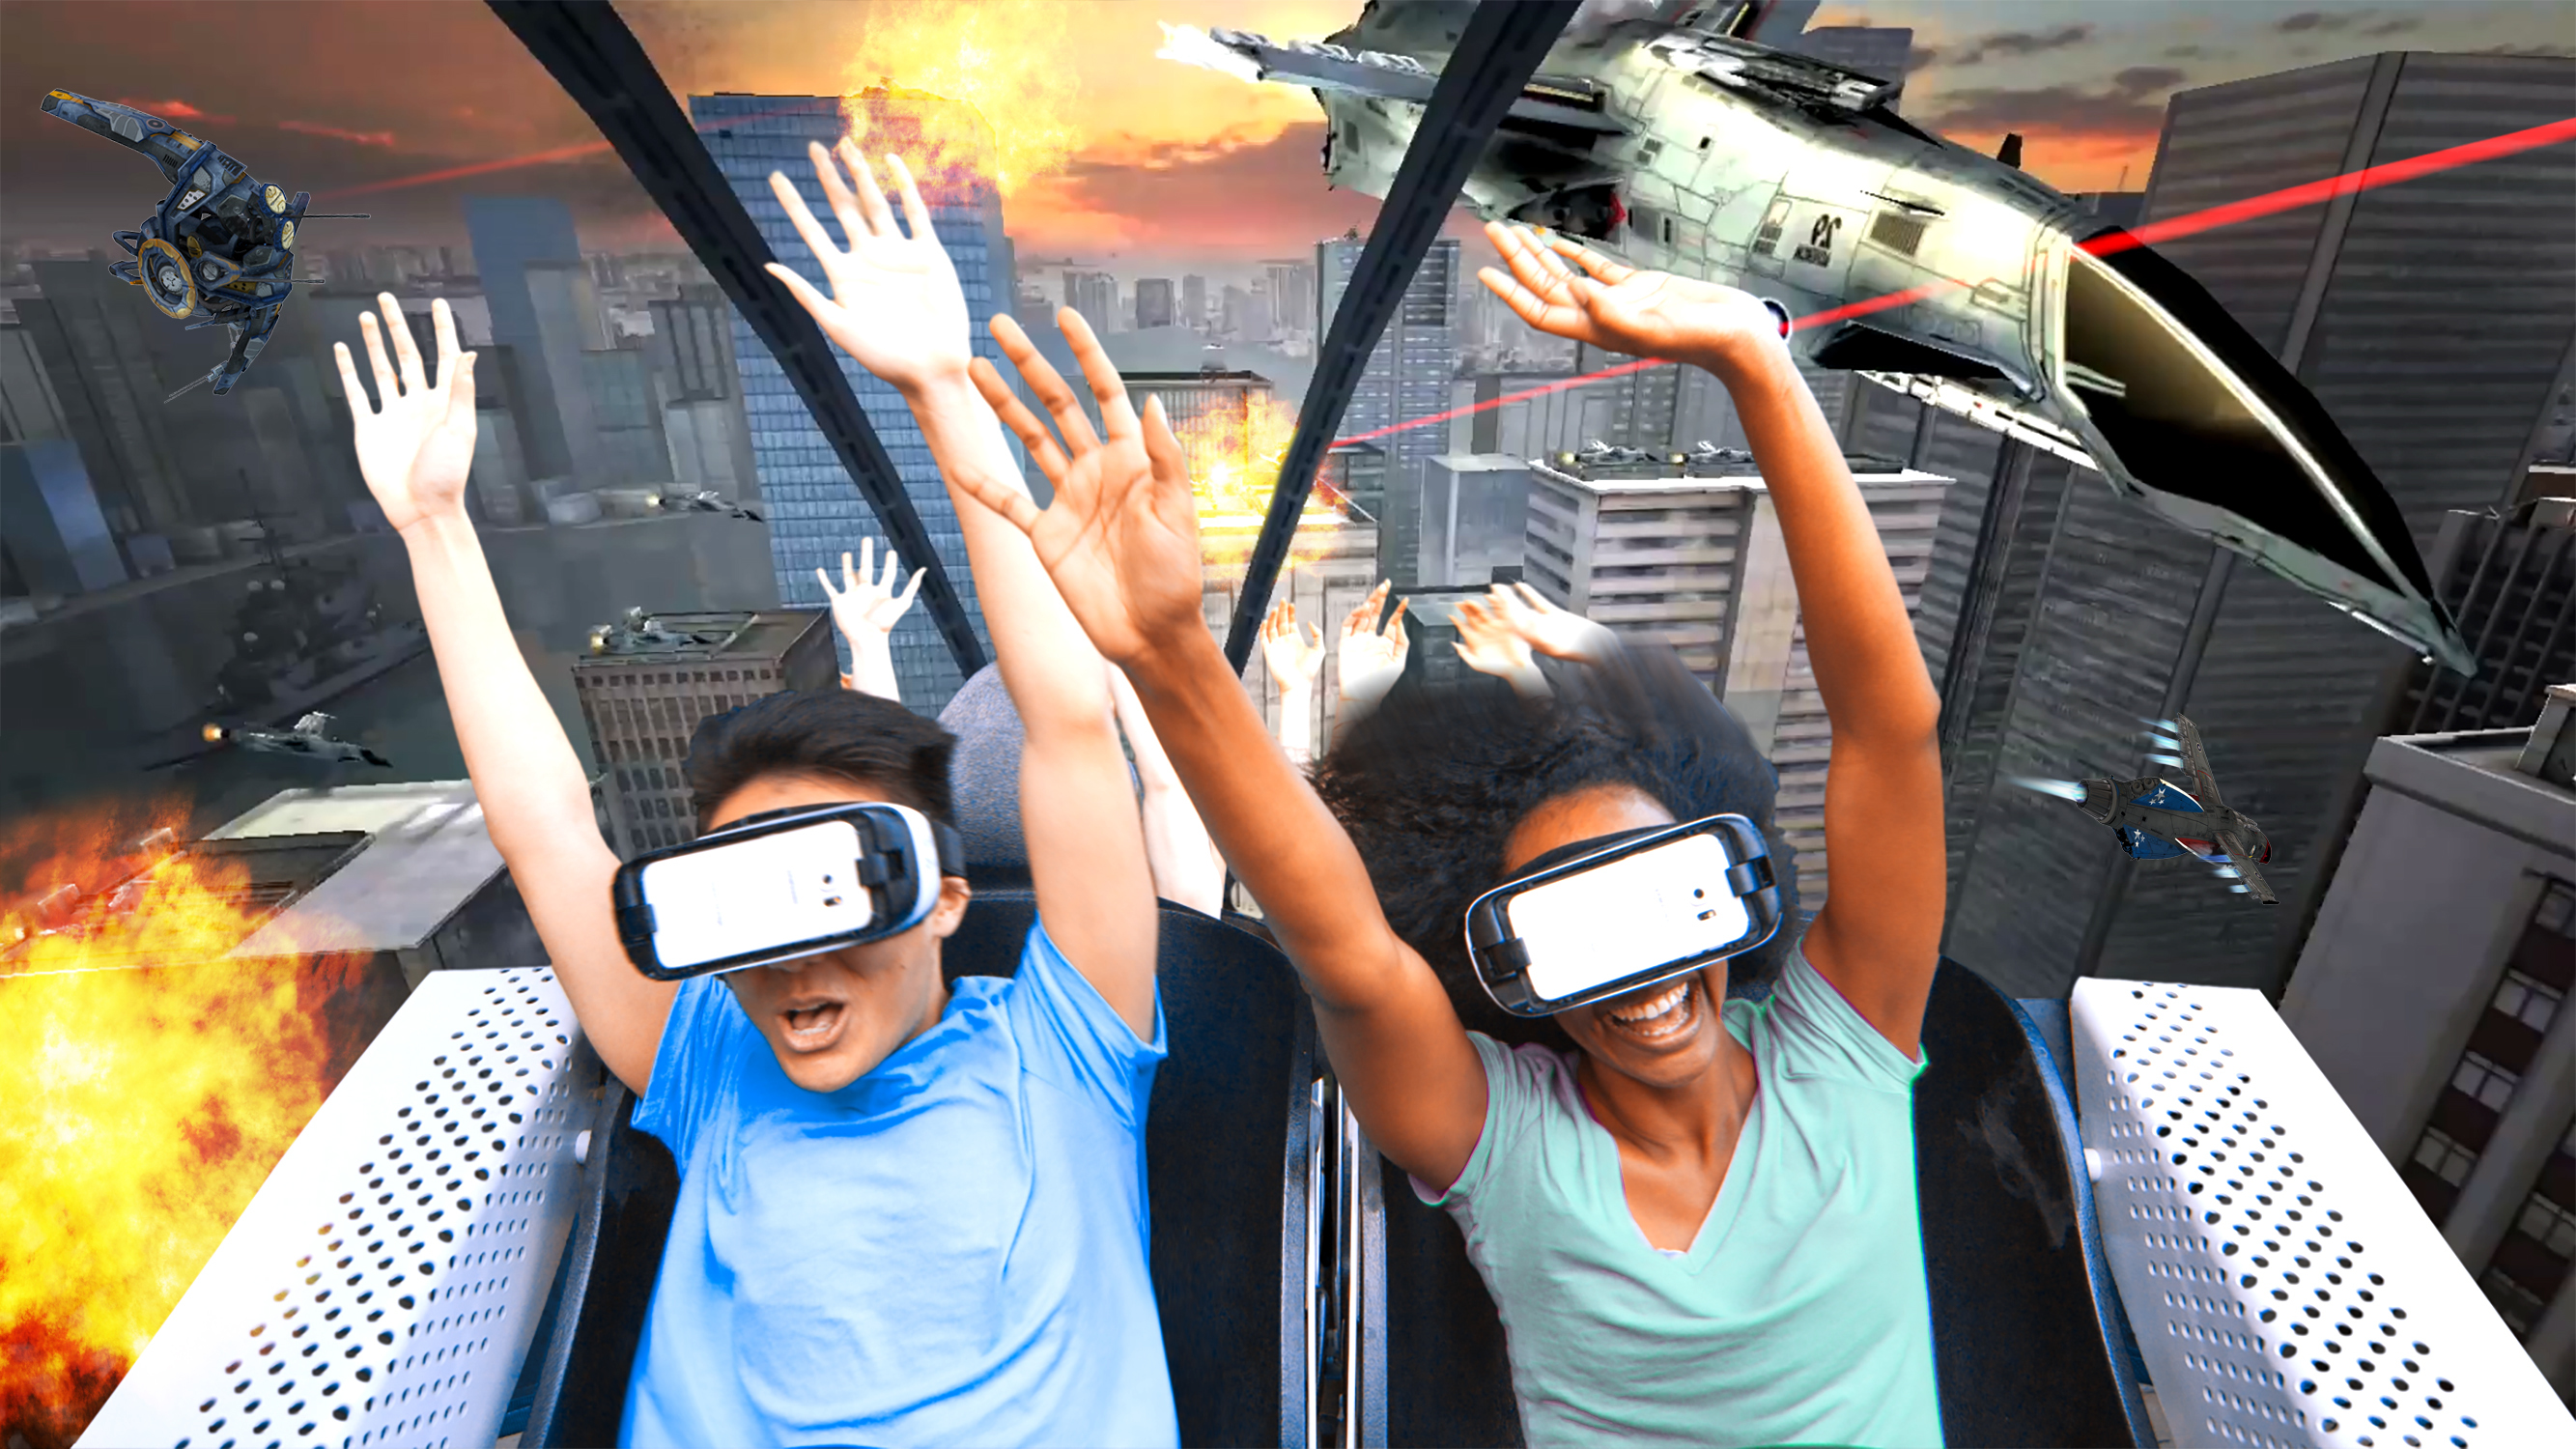 Six Flags is debuting virtual reality roller coasters across its theme parks using Samsung Gear VR mobile headsets.